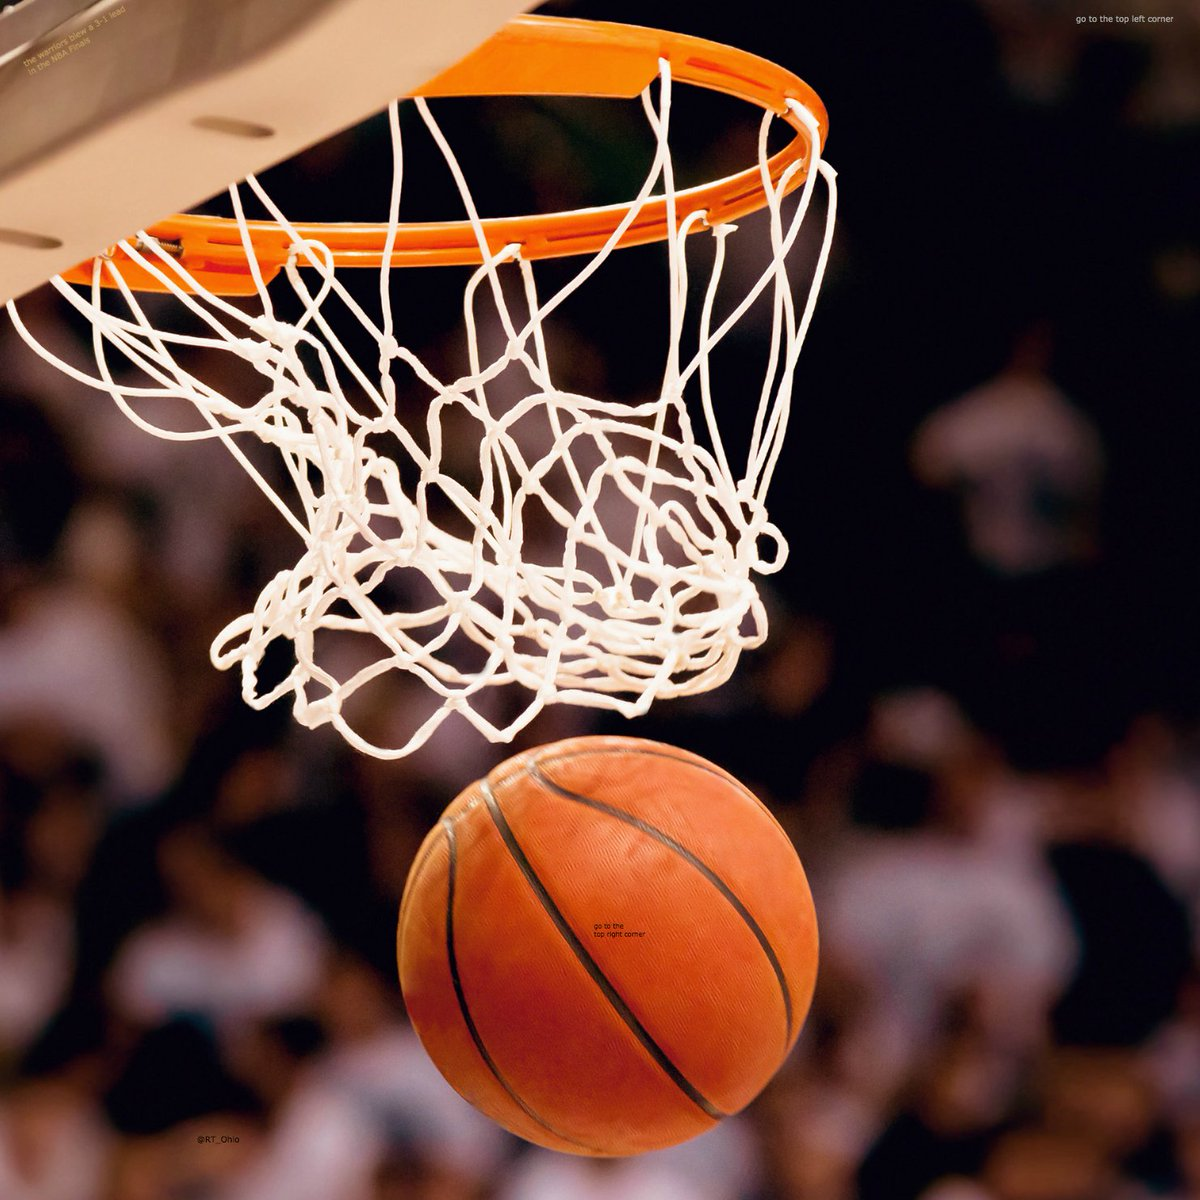 zoom in on the basketball